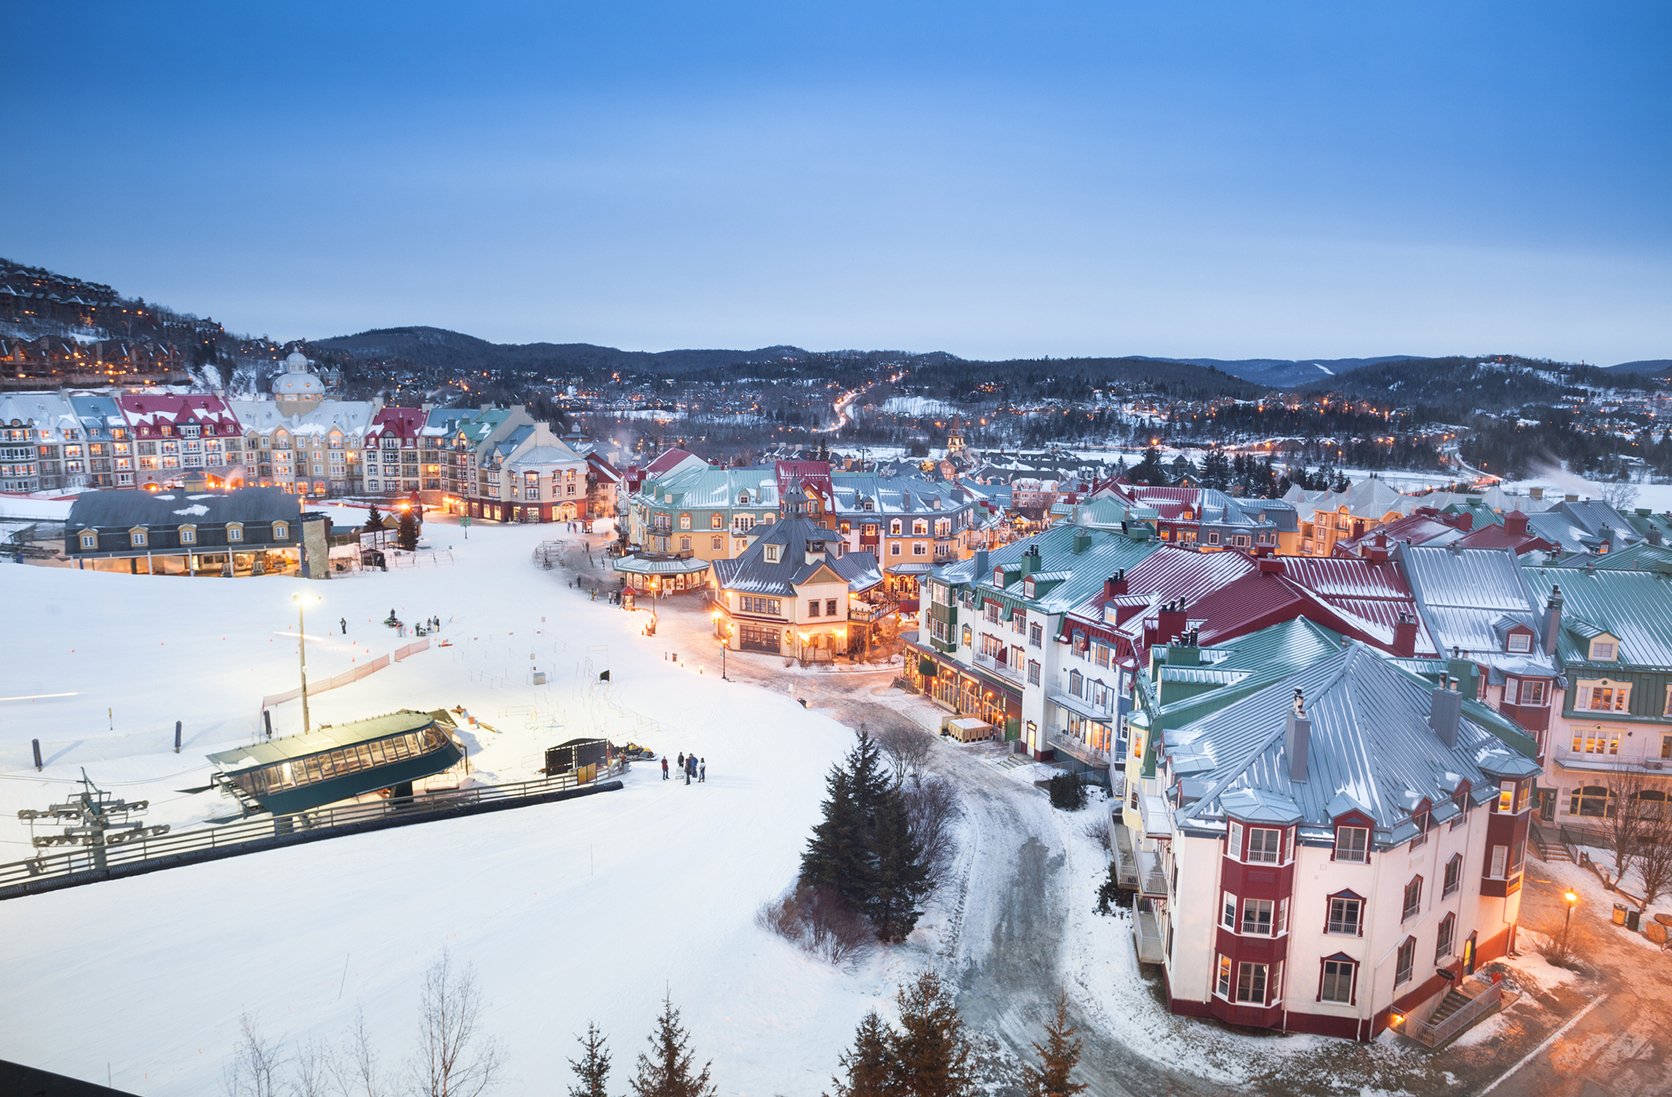 The picturesque village of Mont Tremblant